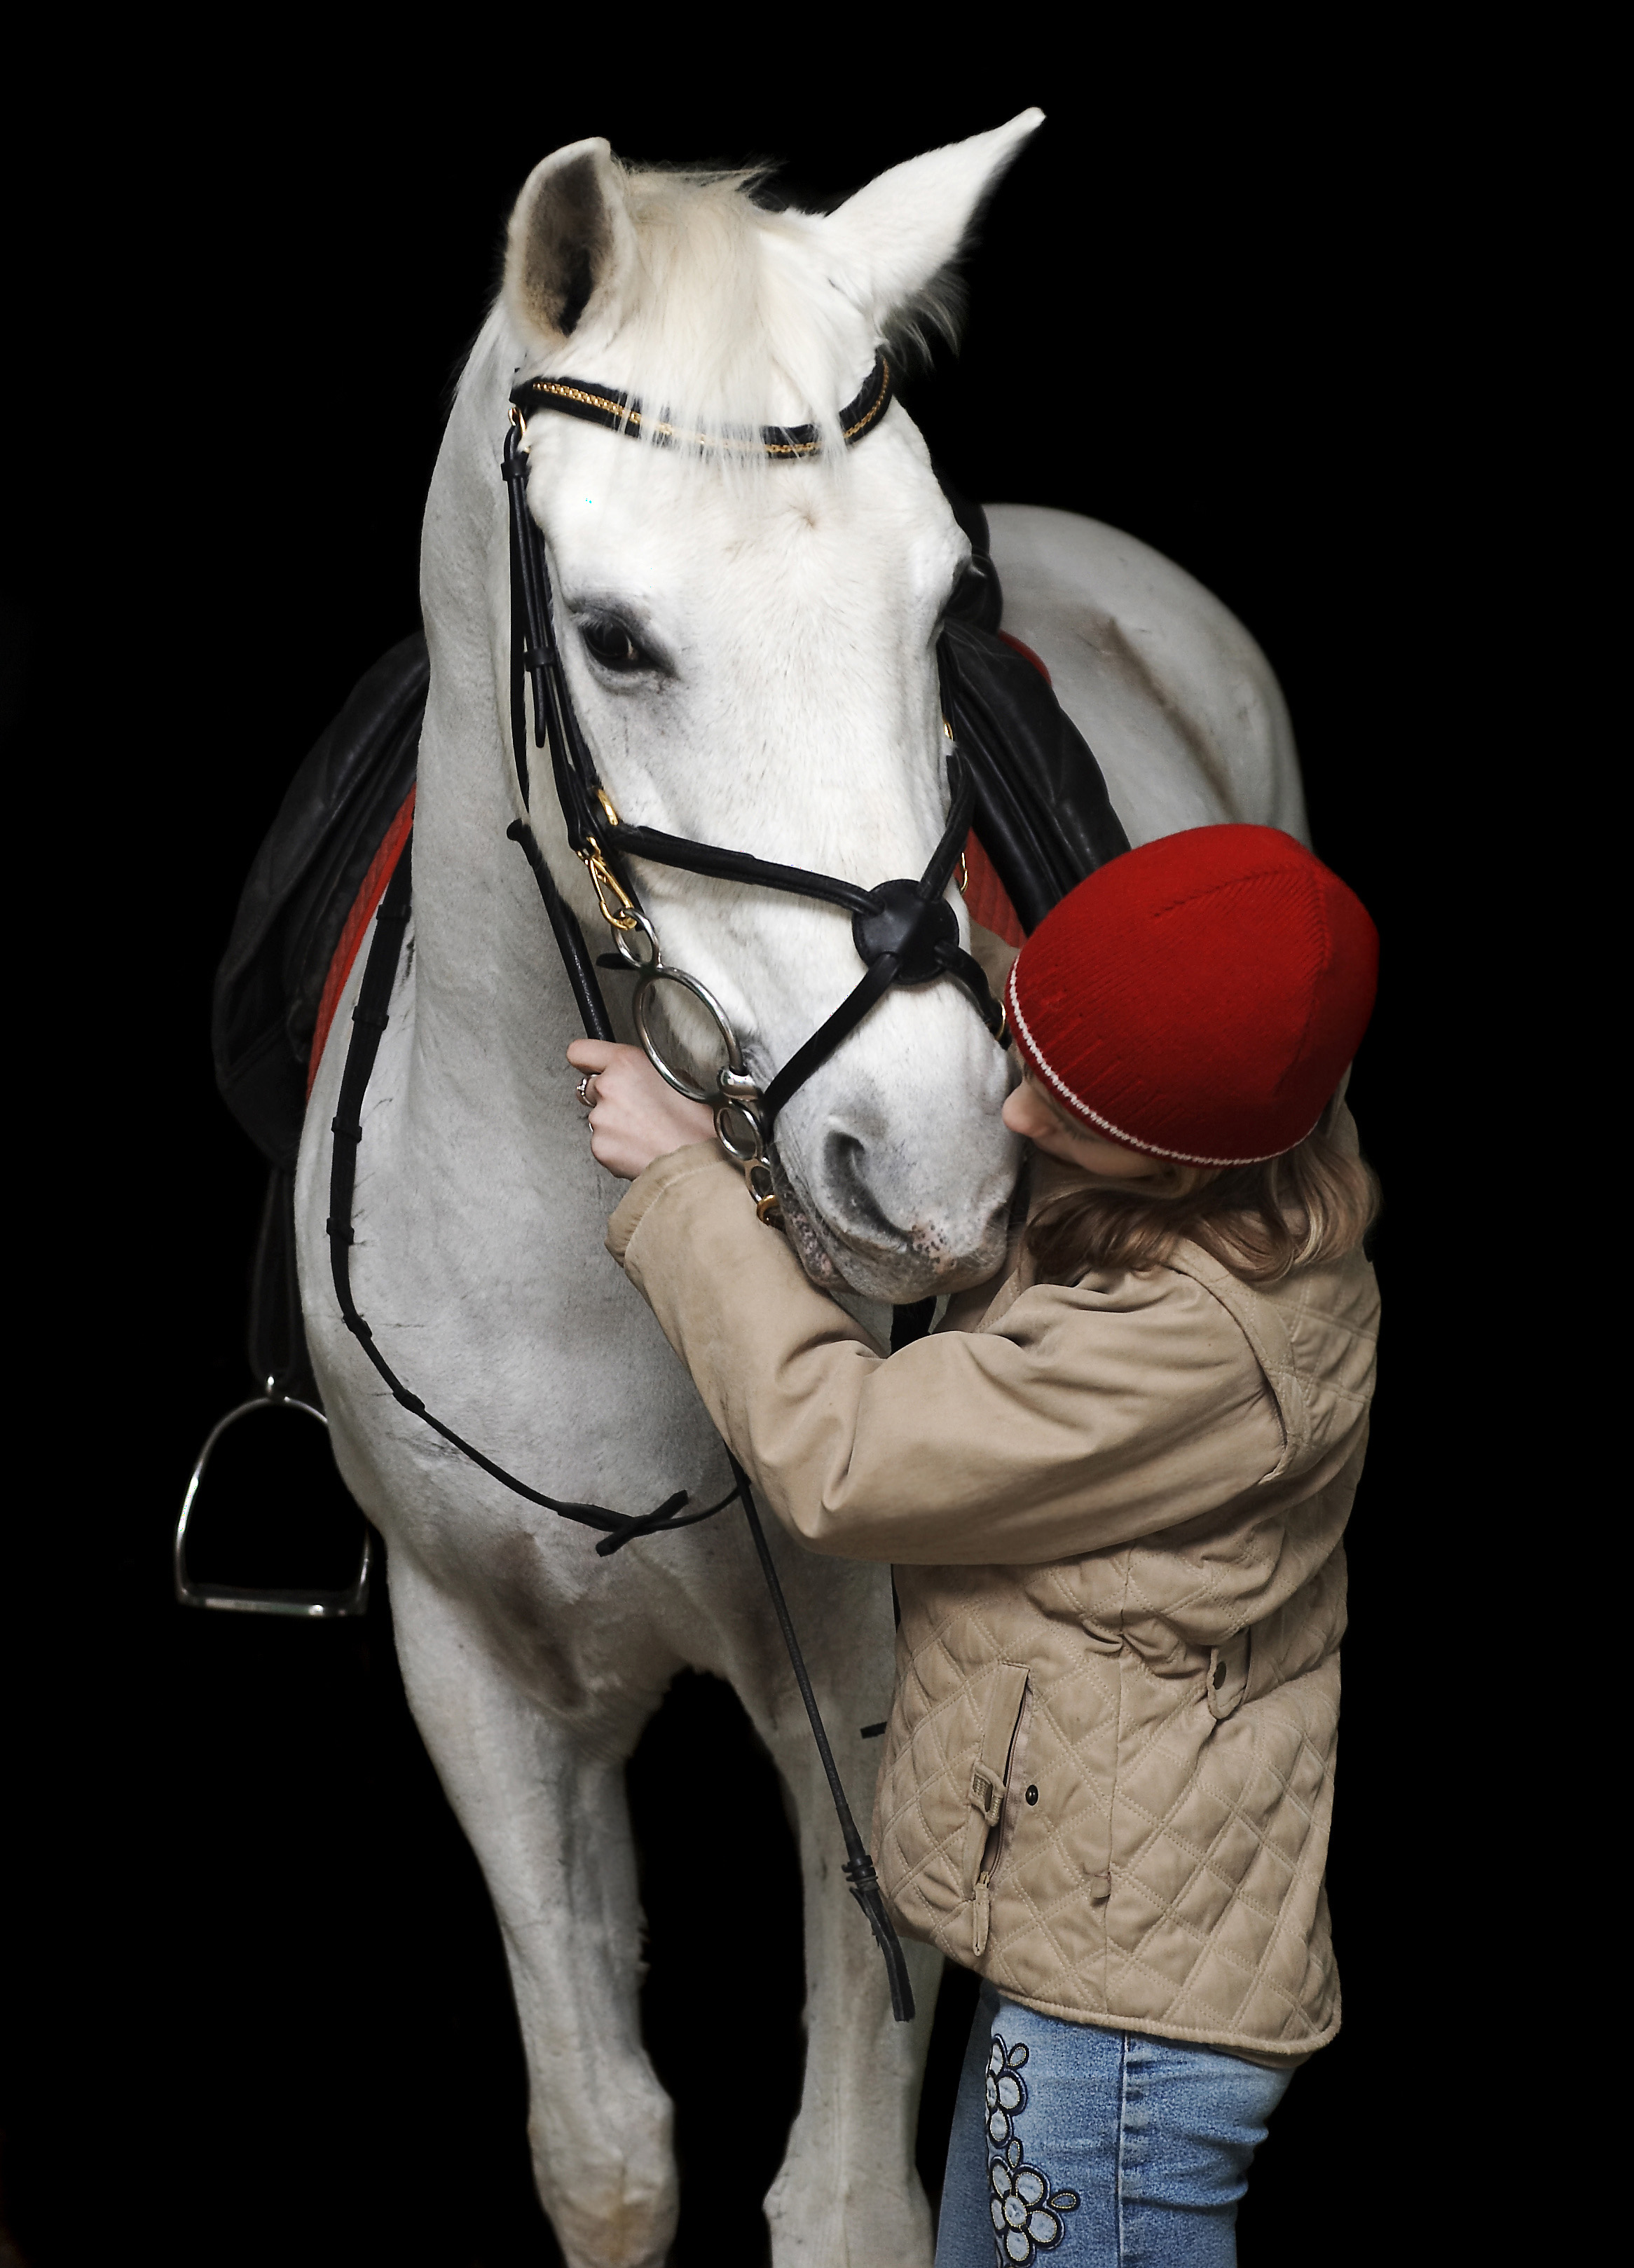 The girl with a white horse on a black background.